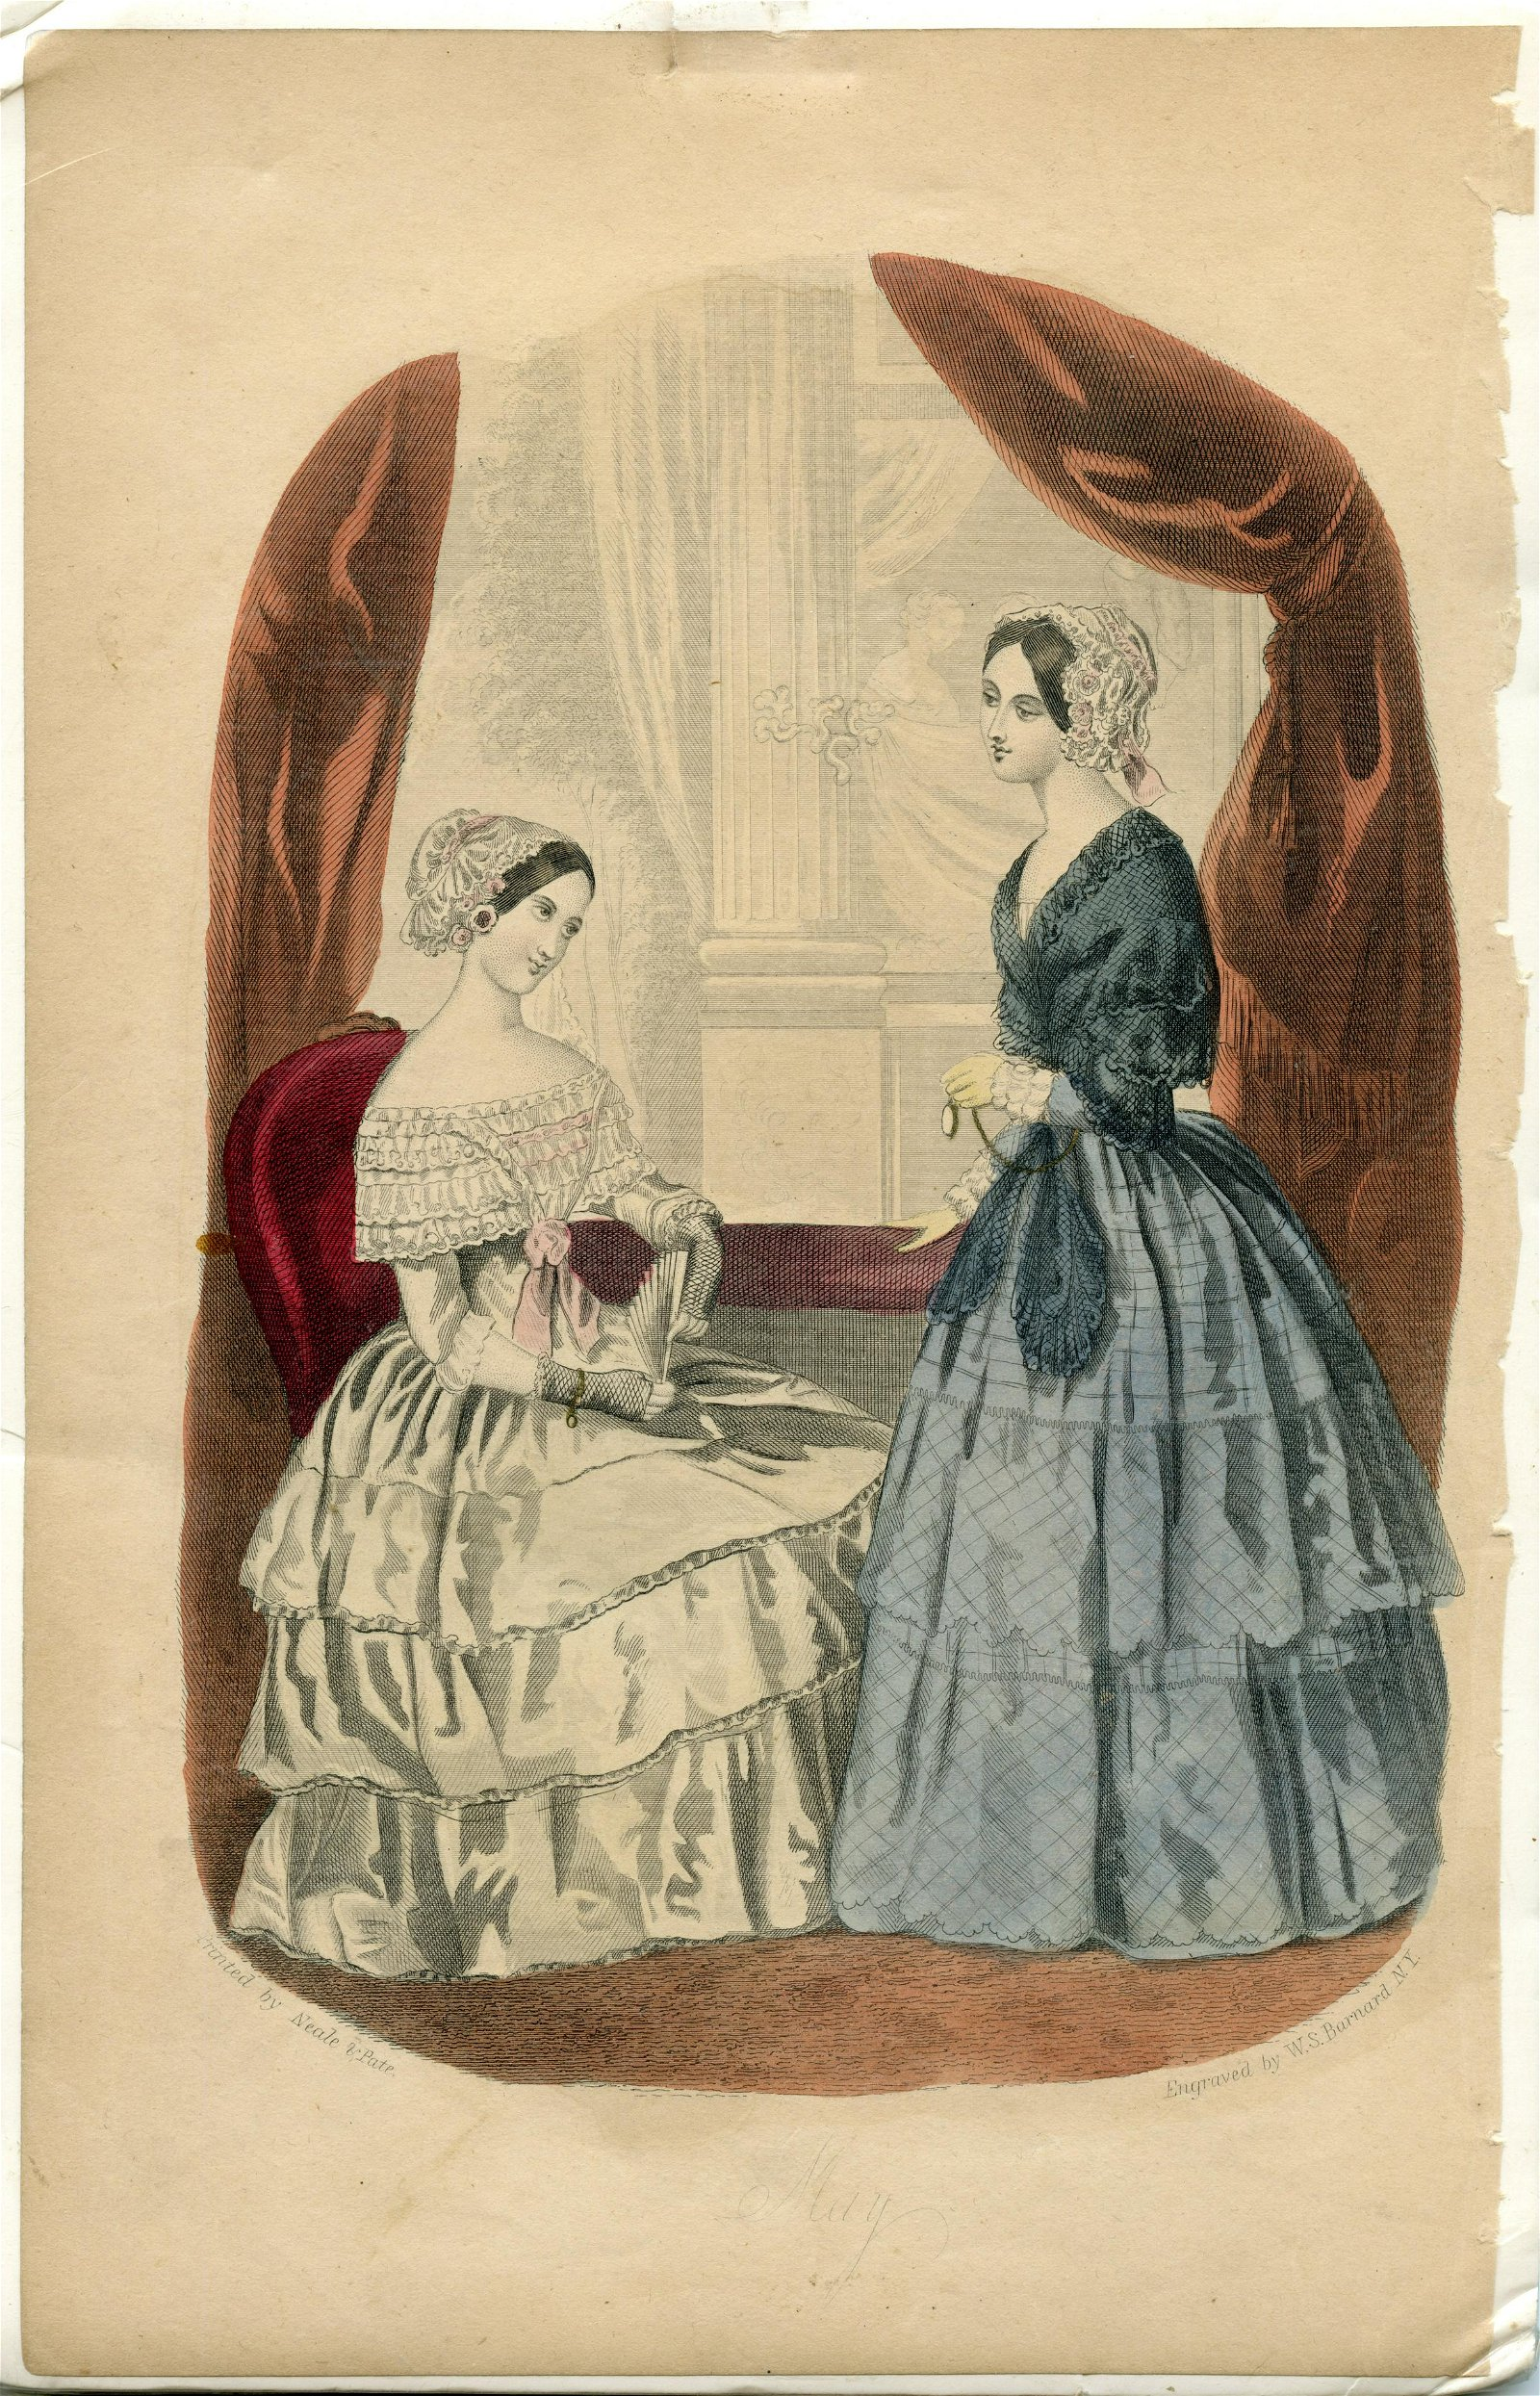 Civil War Era Fashion Engraving- Hand Colored